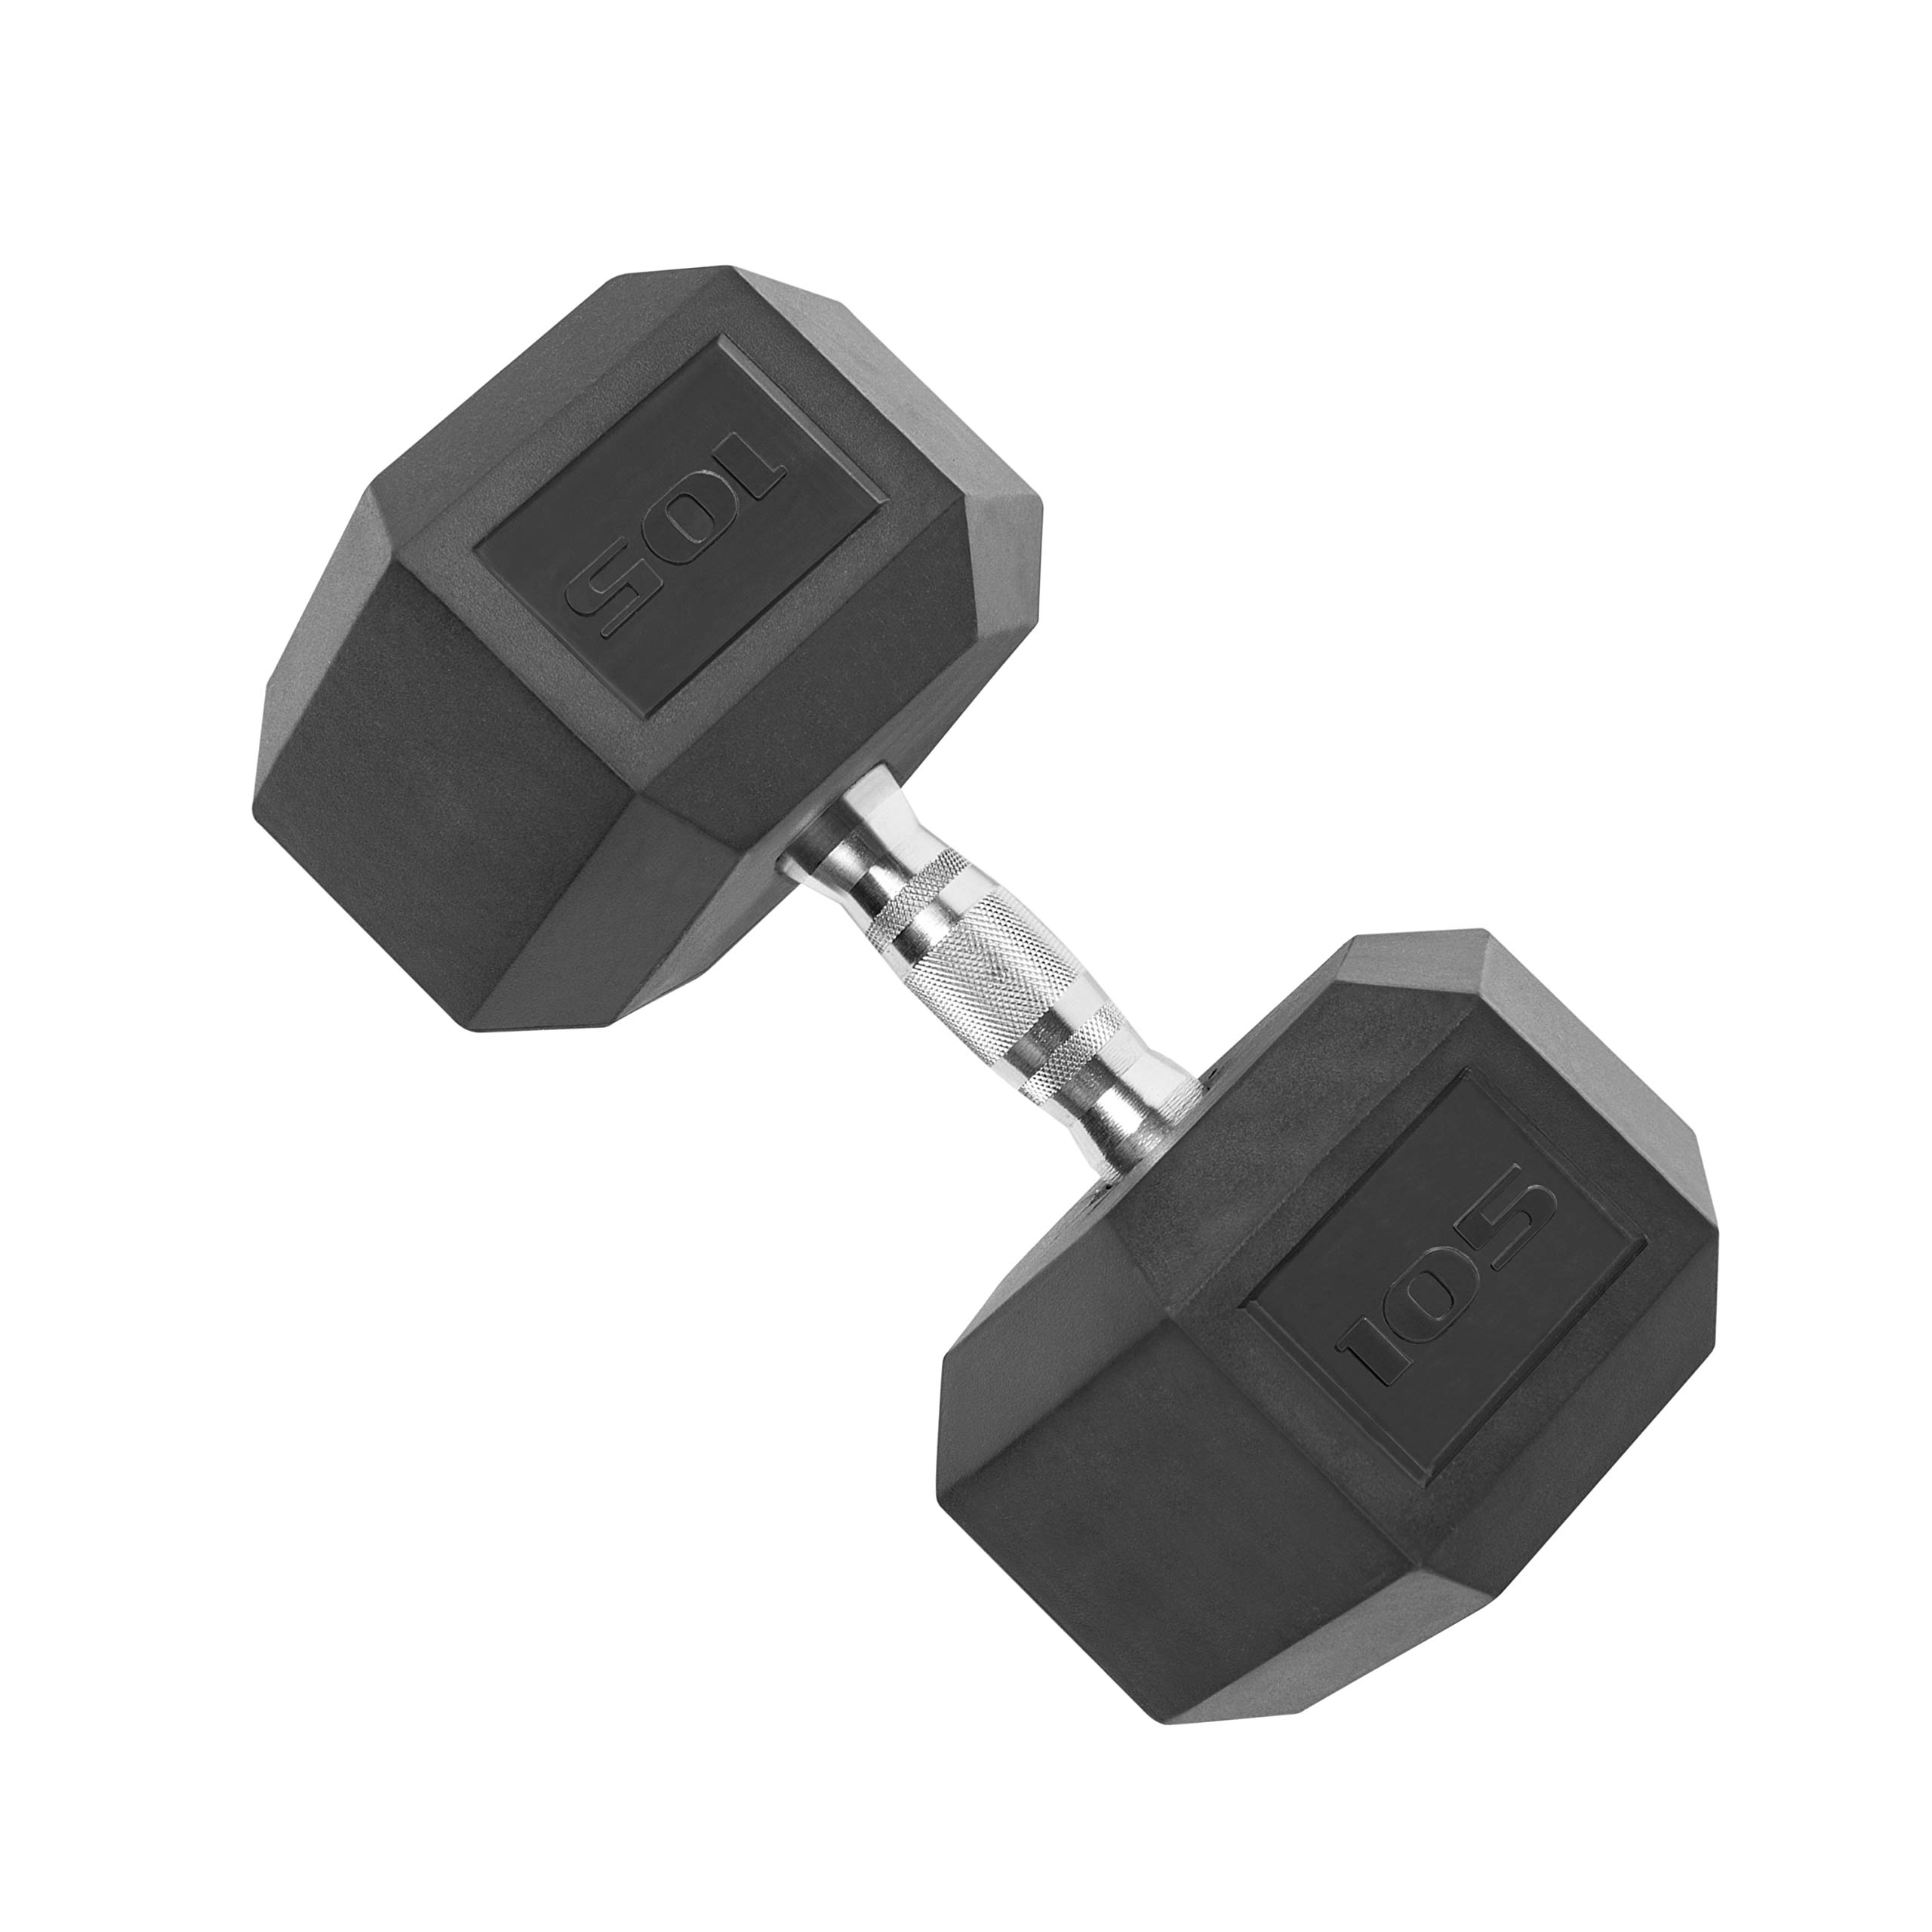 CAP Barbell SDR-105 Single Rubber Coated Hex Dumbbell with Contoured Chrome Handle, 105-Pound, Black